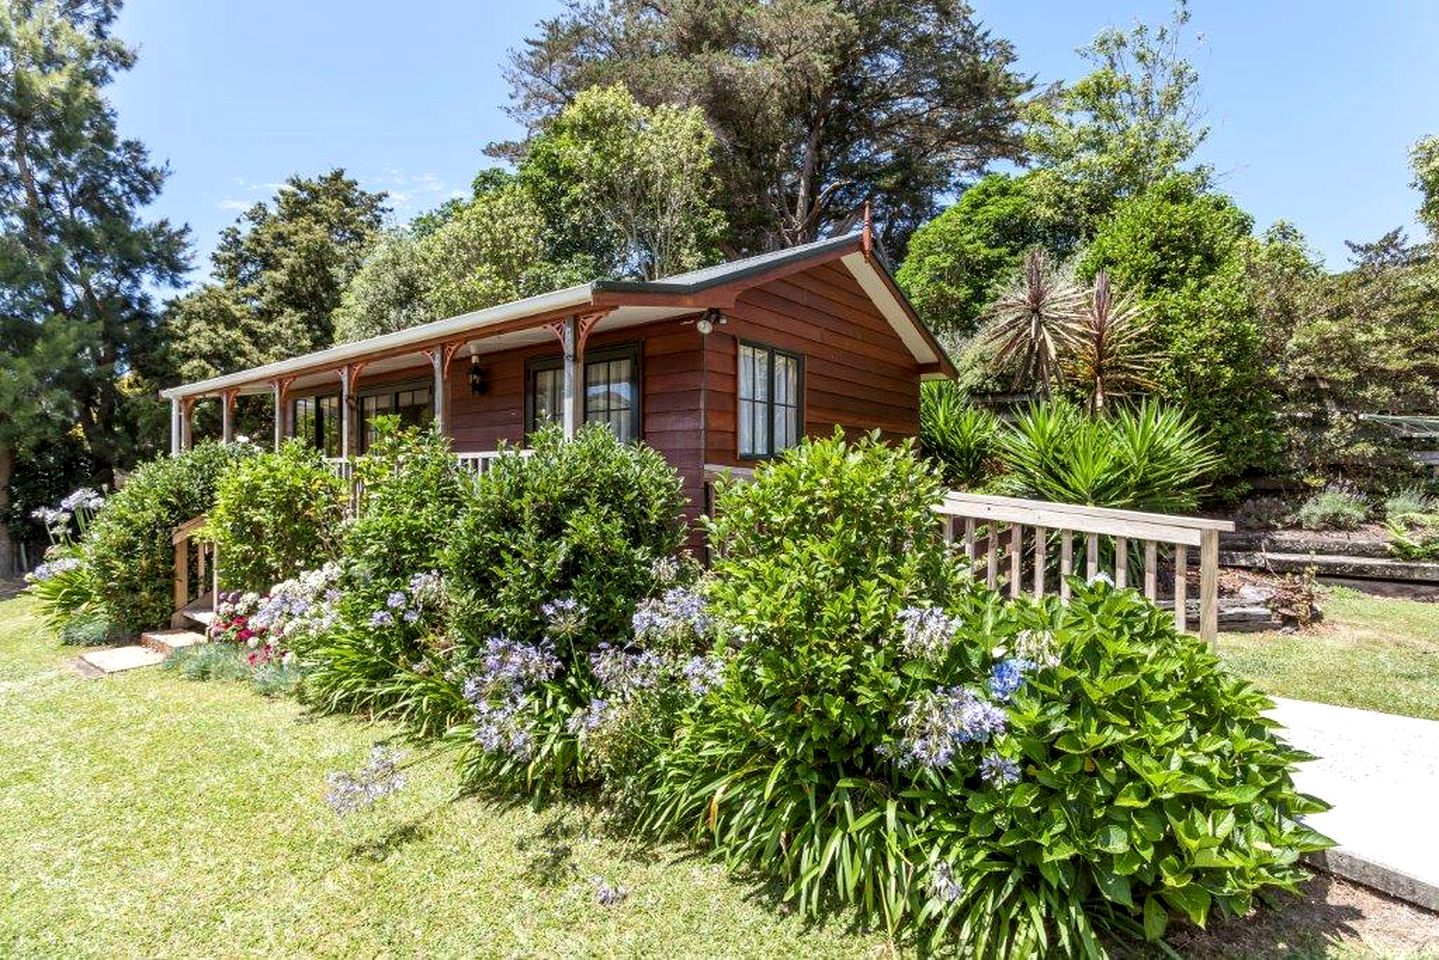 Luxury cottage rental near Karangahake Gorge, New Zealand